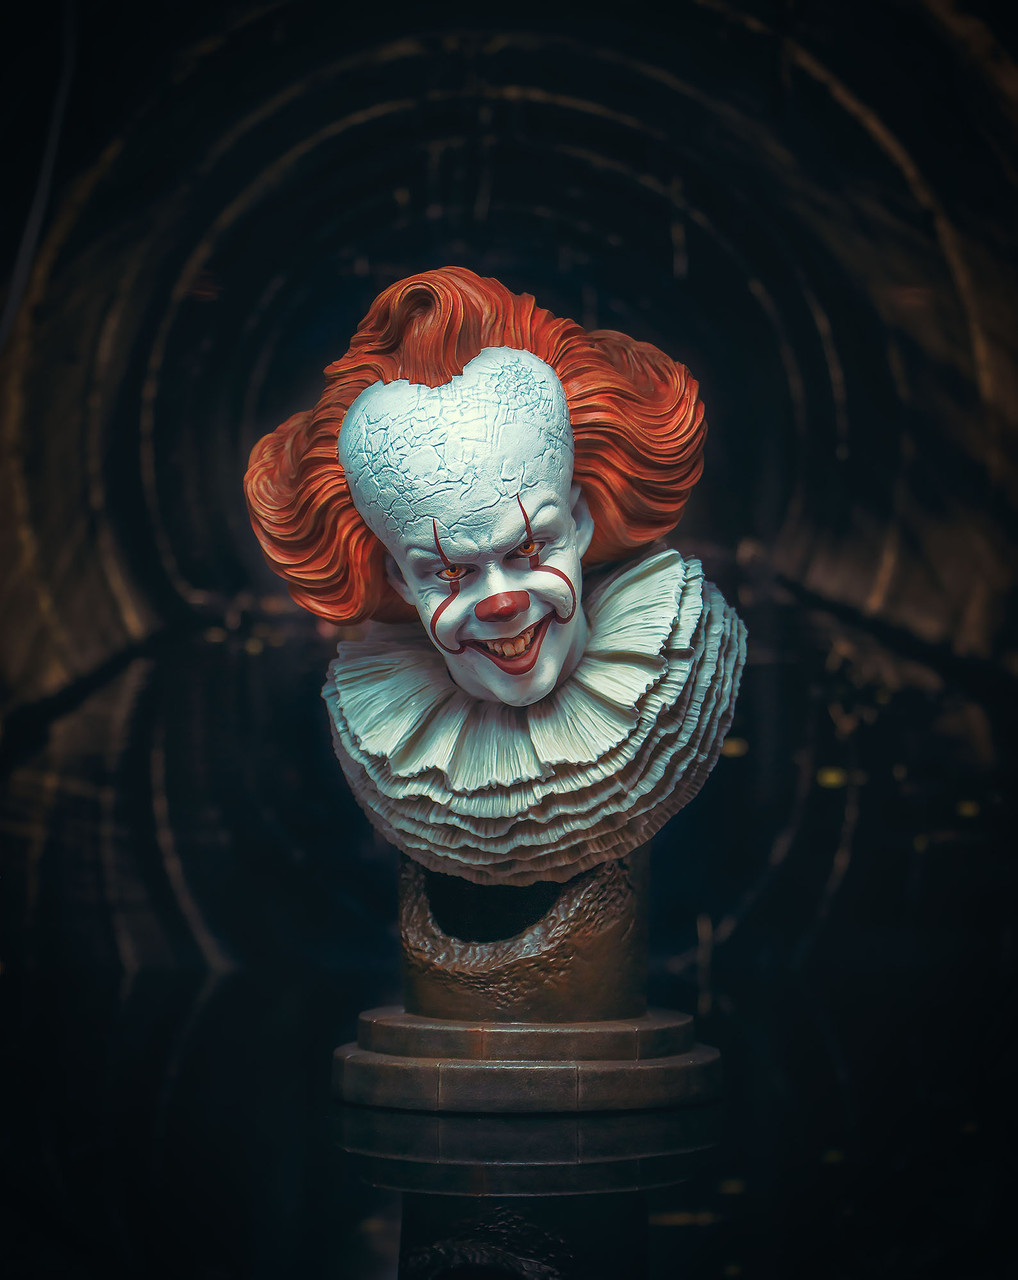 Le chapitre 2 Legends in 3D Pennywise 1:2 Scale Bust PRE ORDER